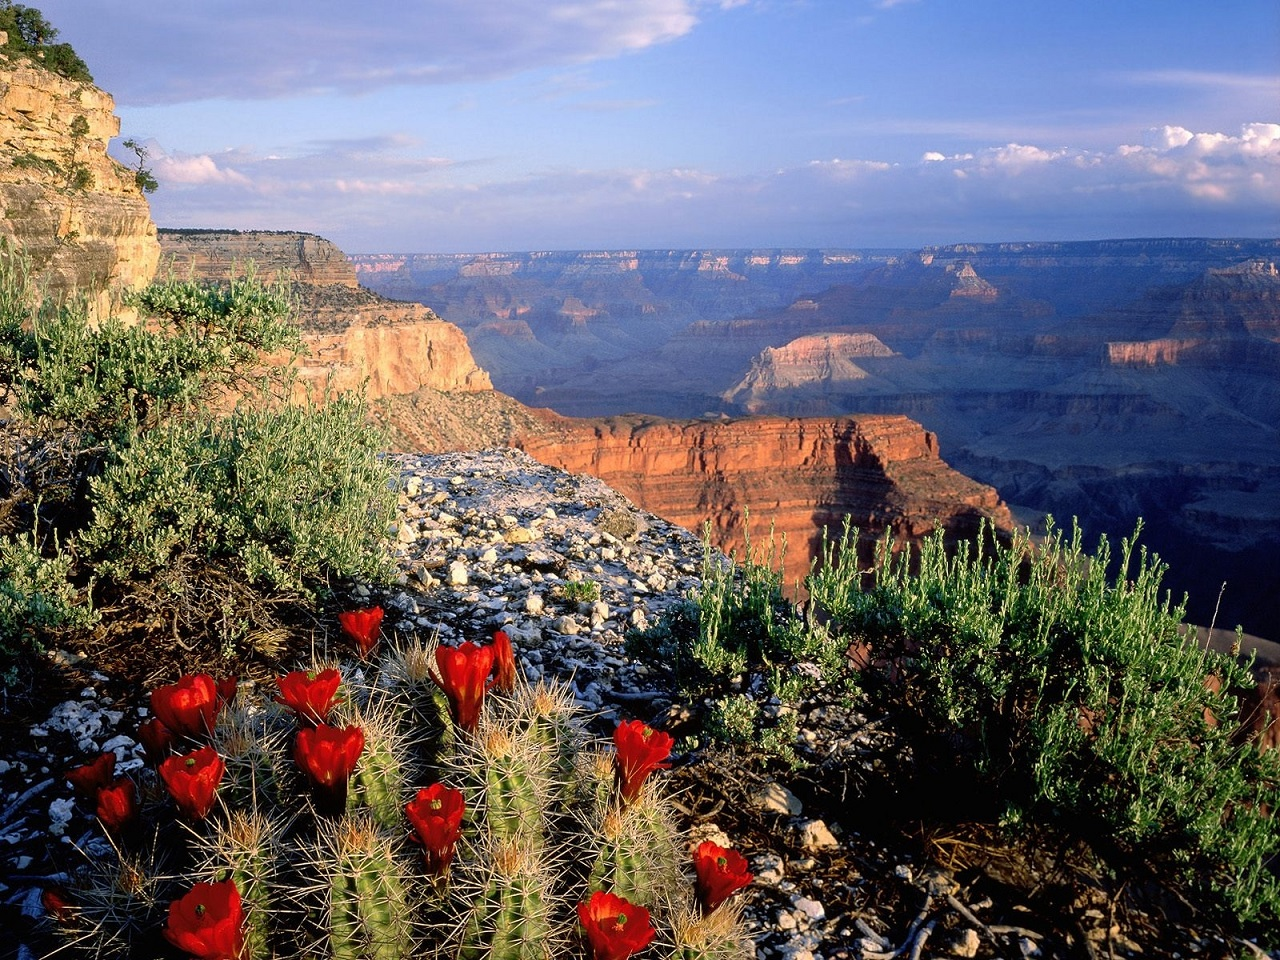 Grand Canyon cactus flowers